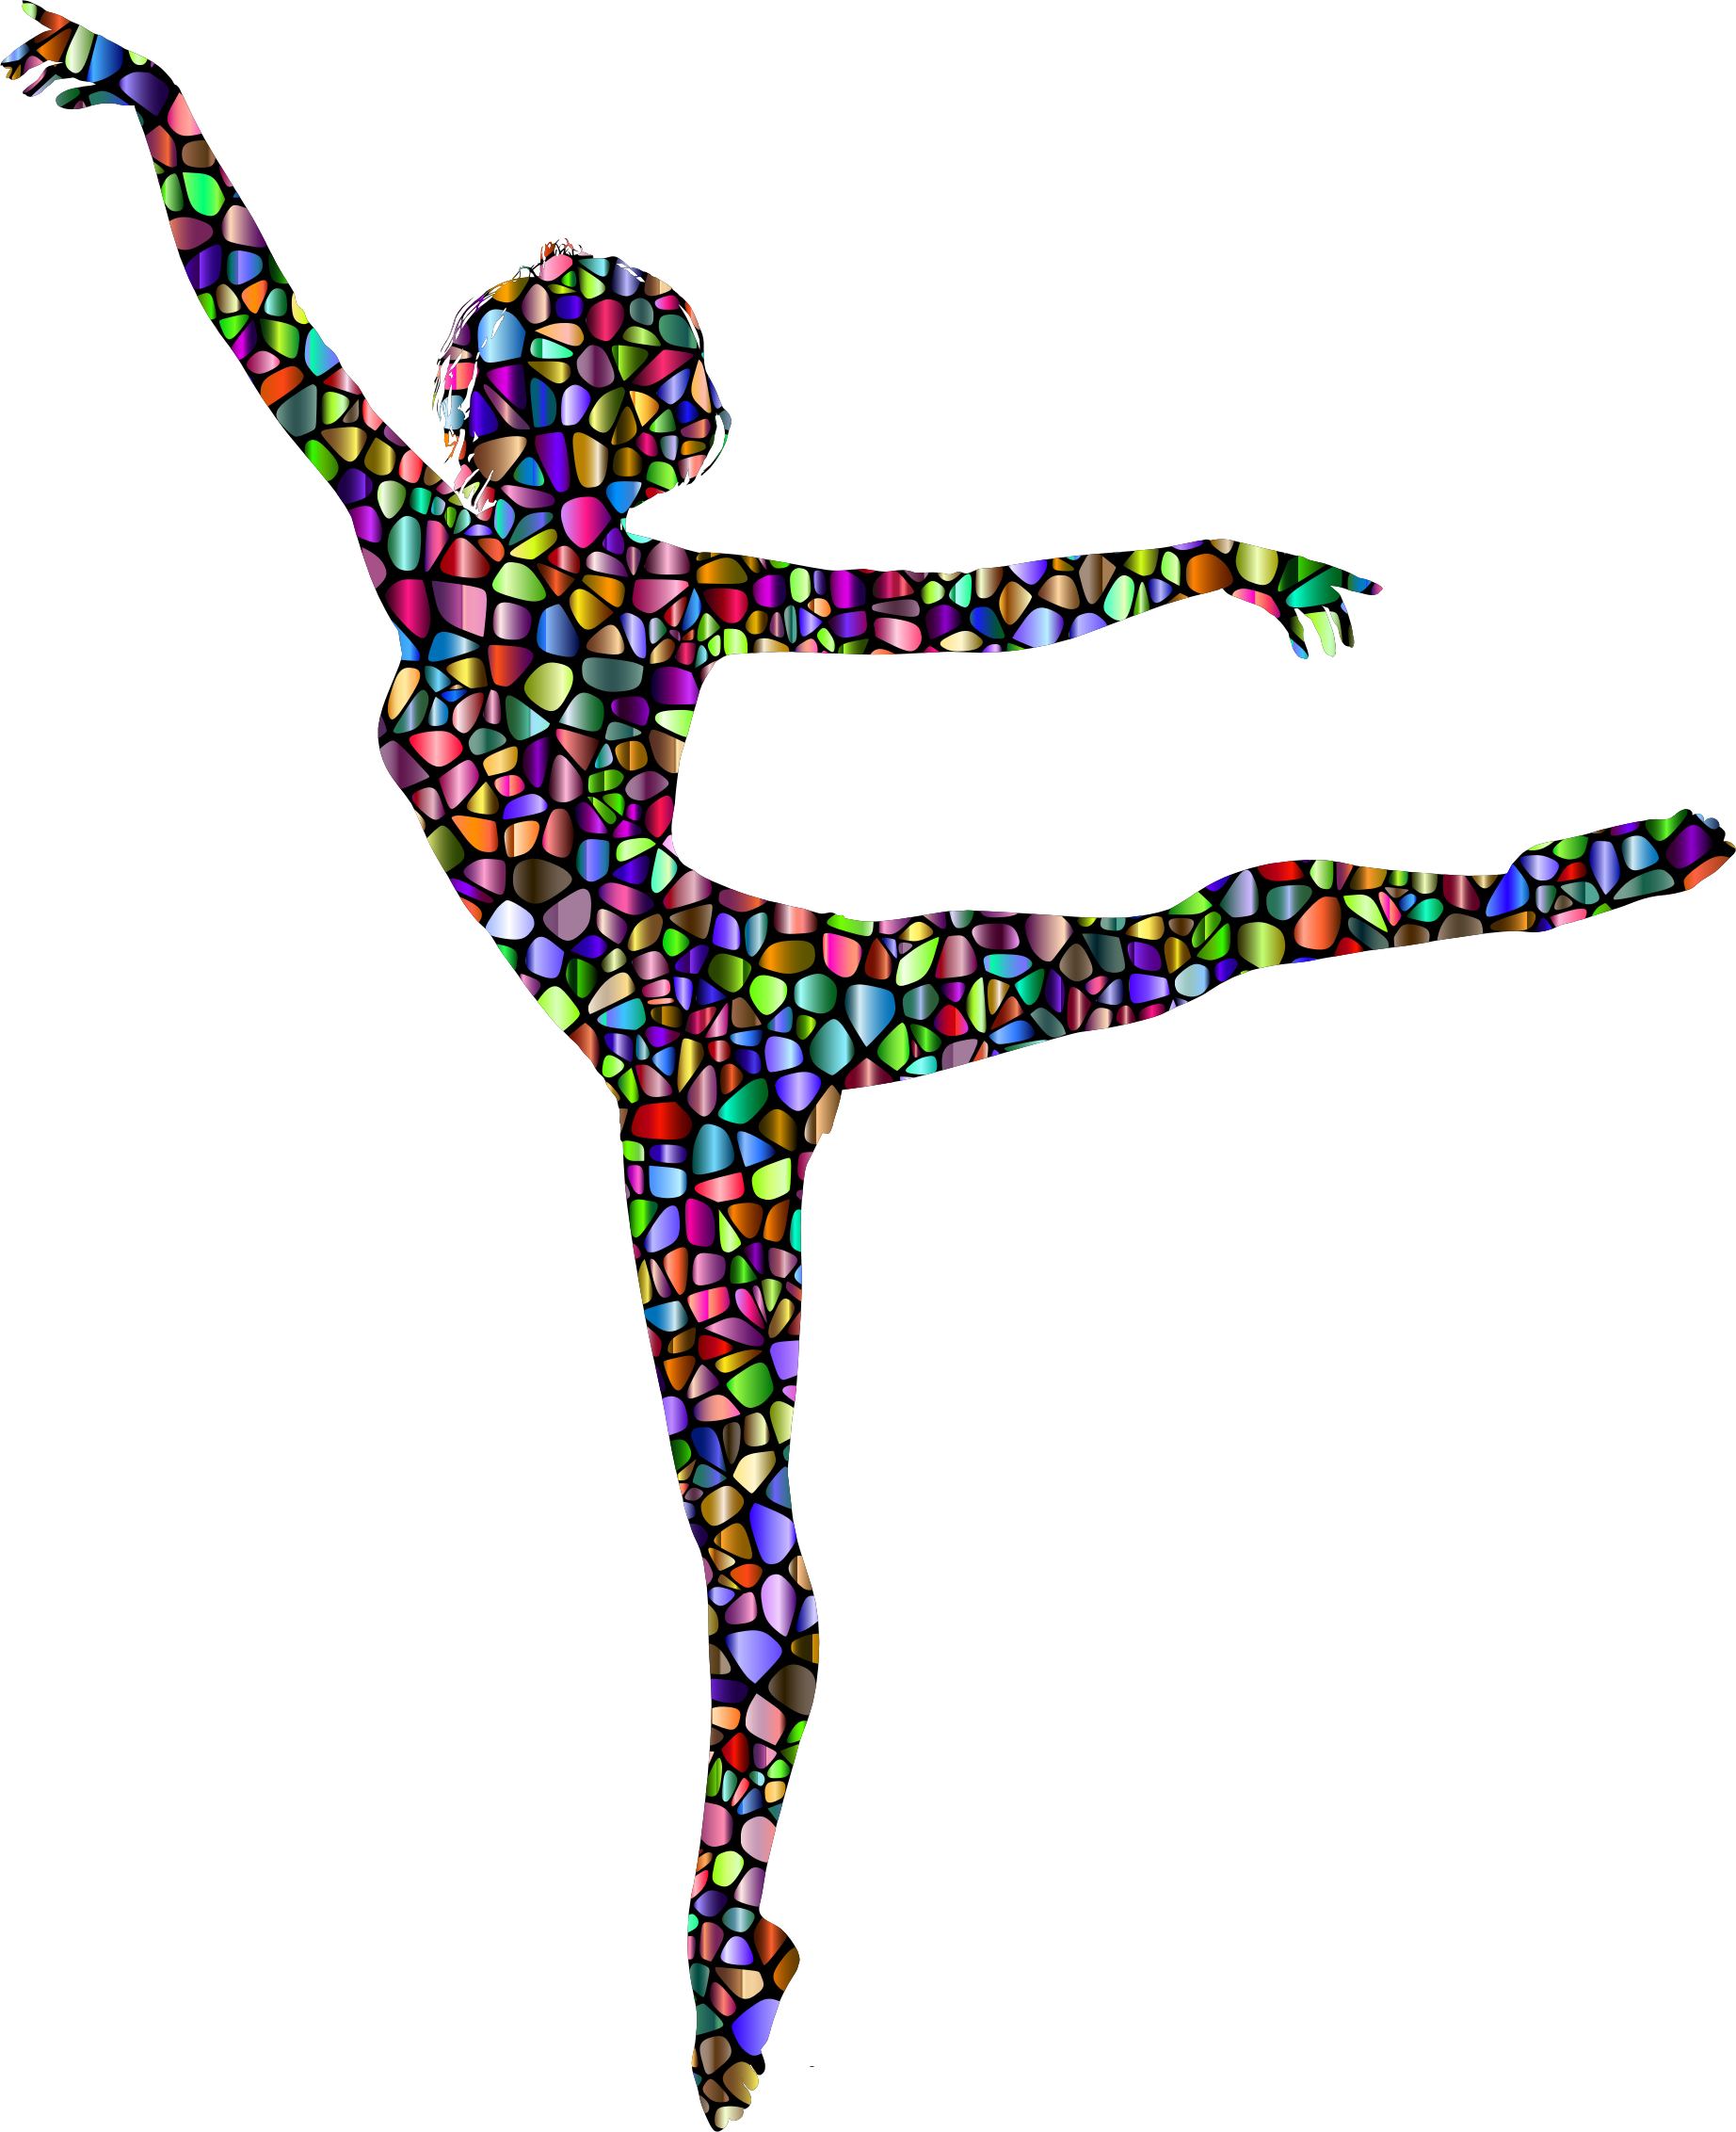 Polychromatic Tiled Lithe Dancing Woman Silhouette by GDJ